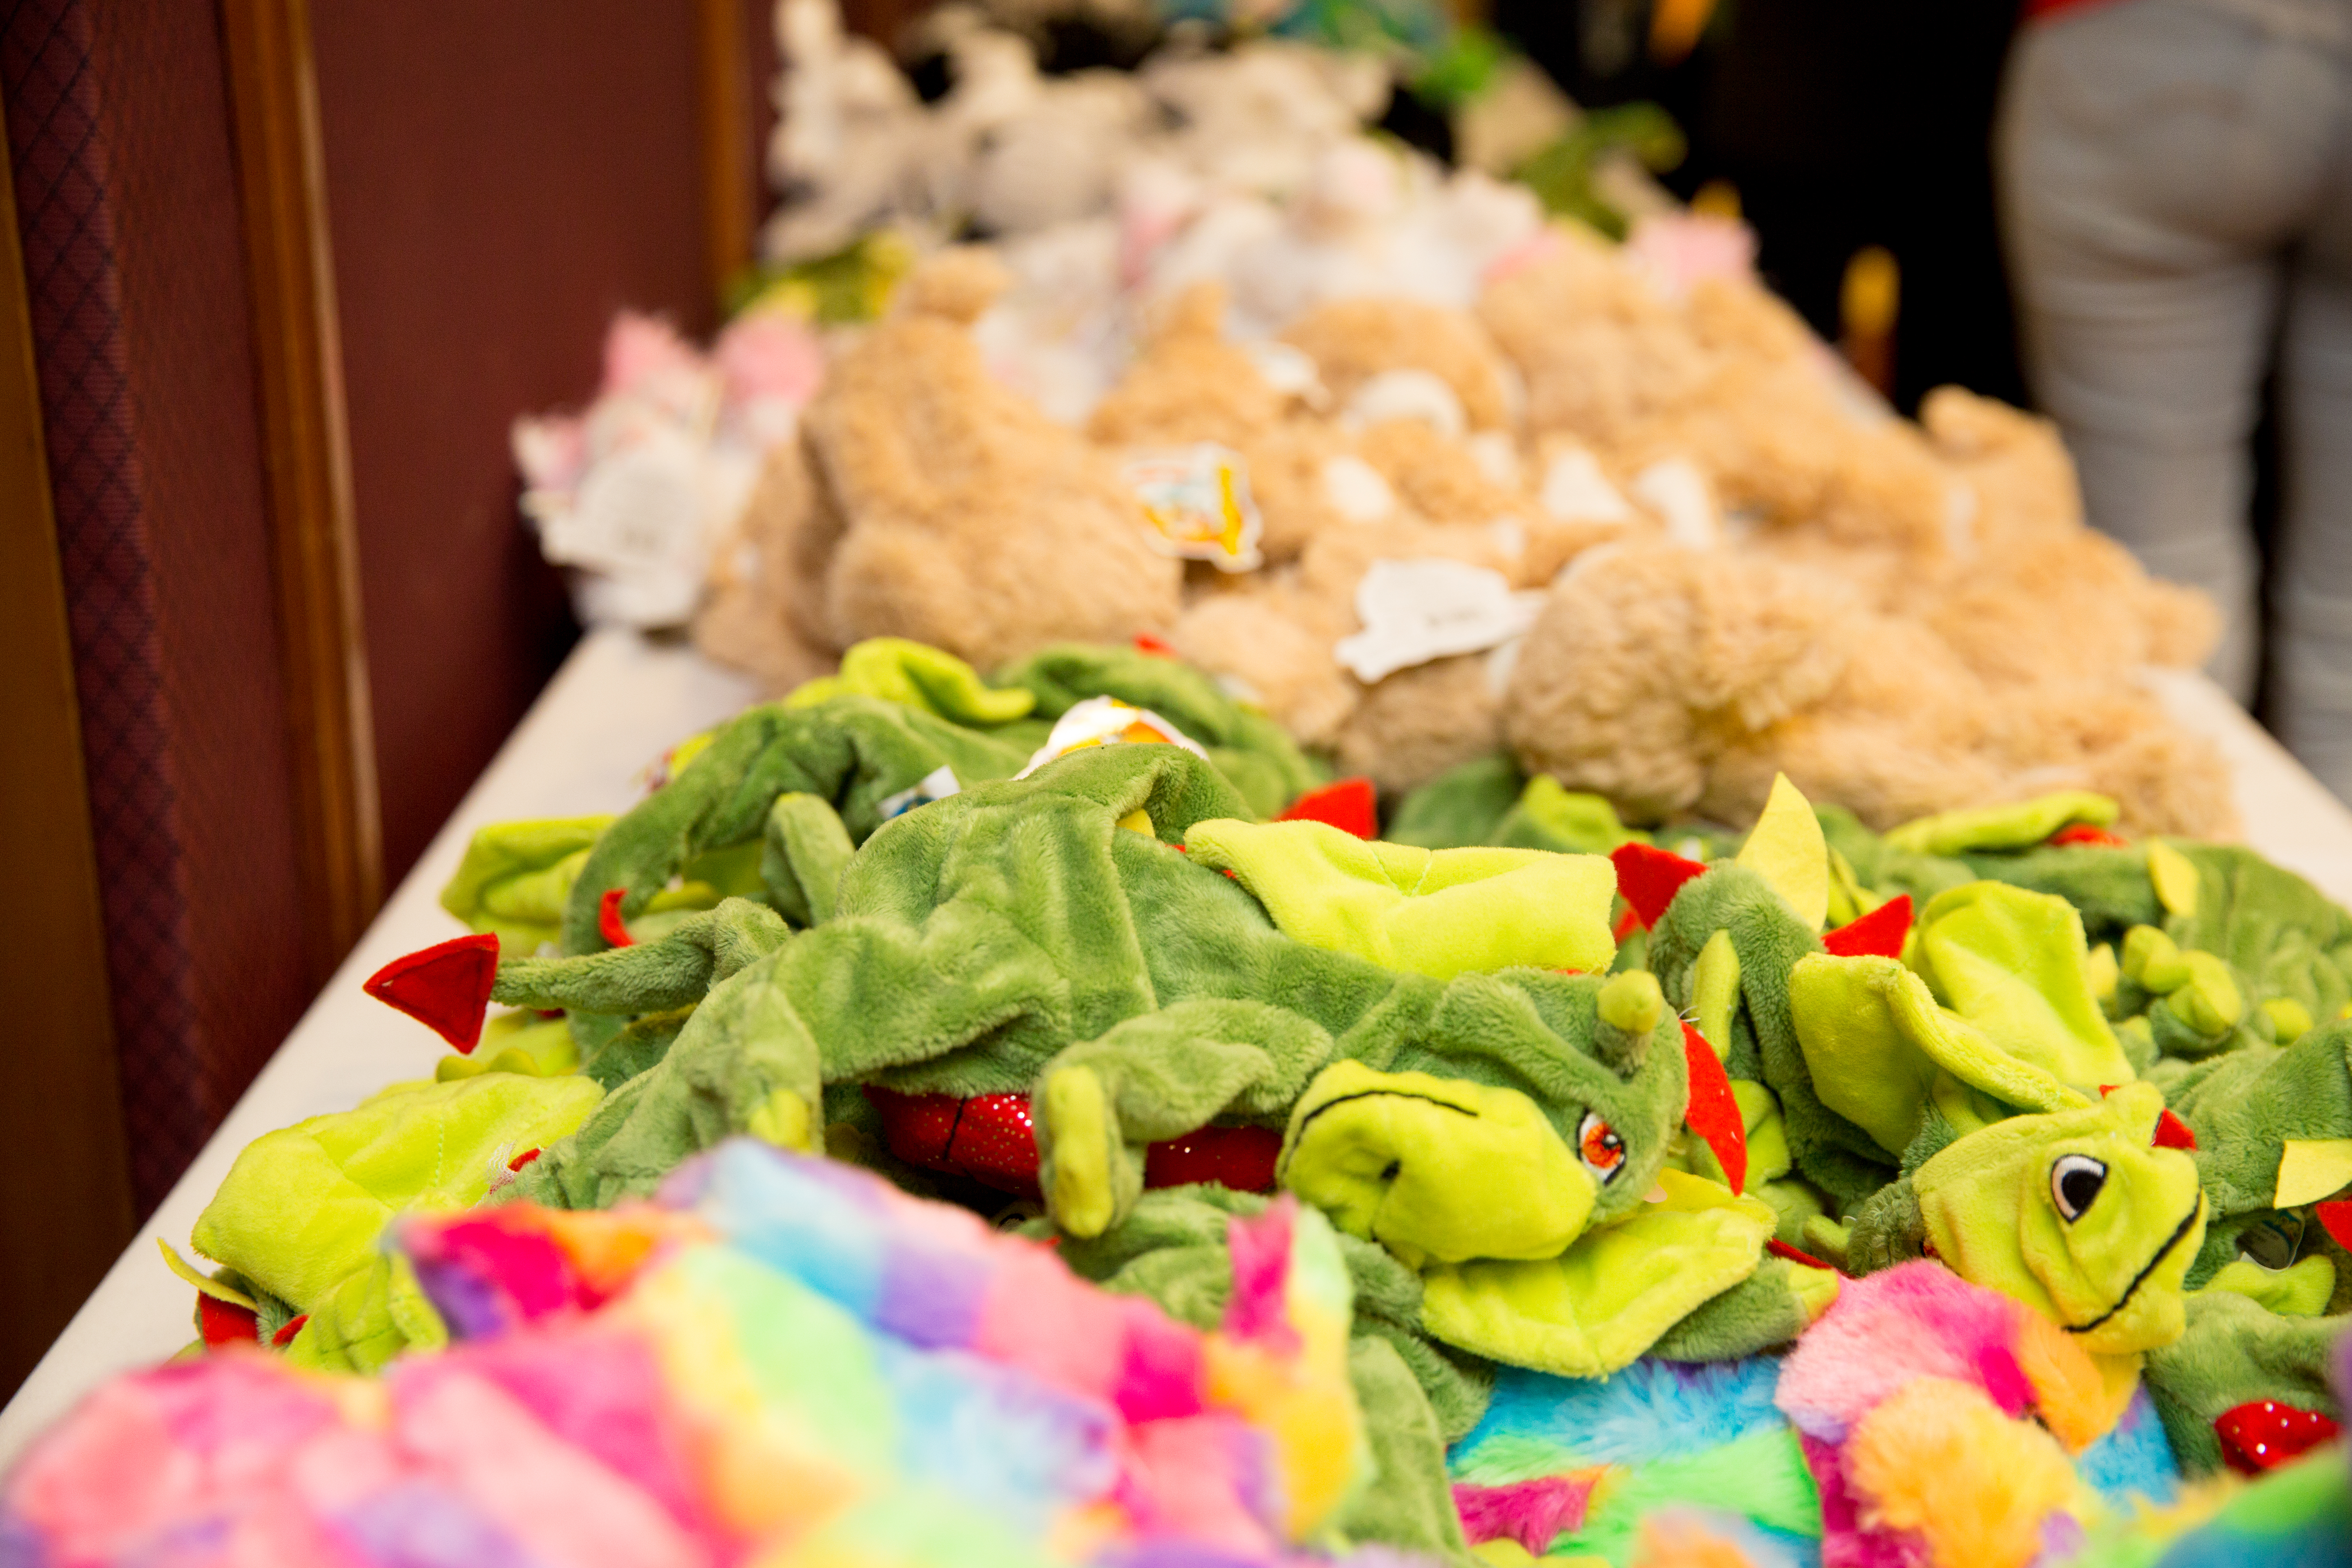 Stuffed animals (waiting to be filled) from Shamrock Fest